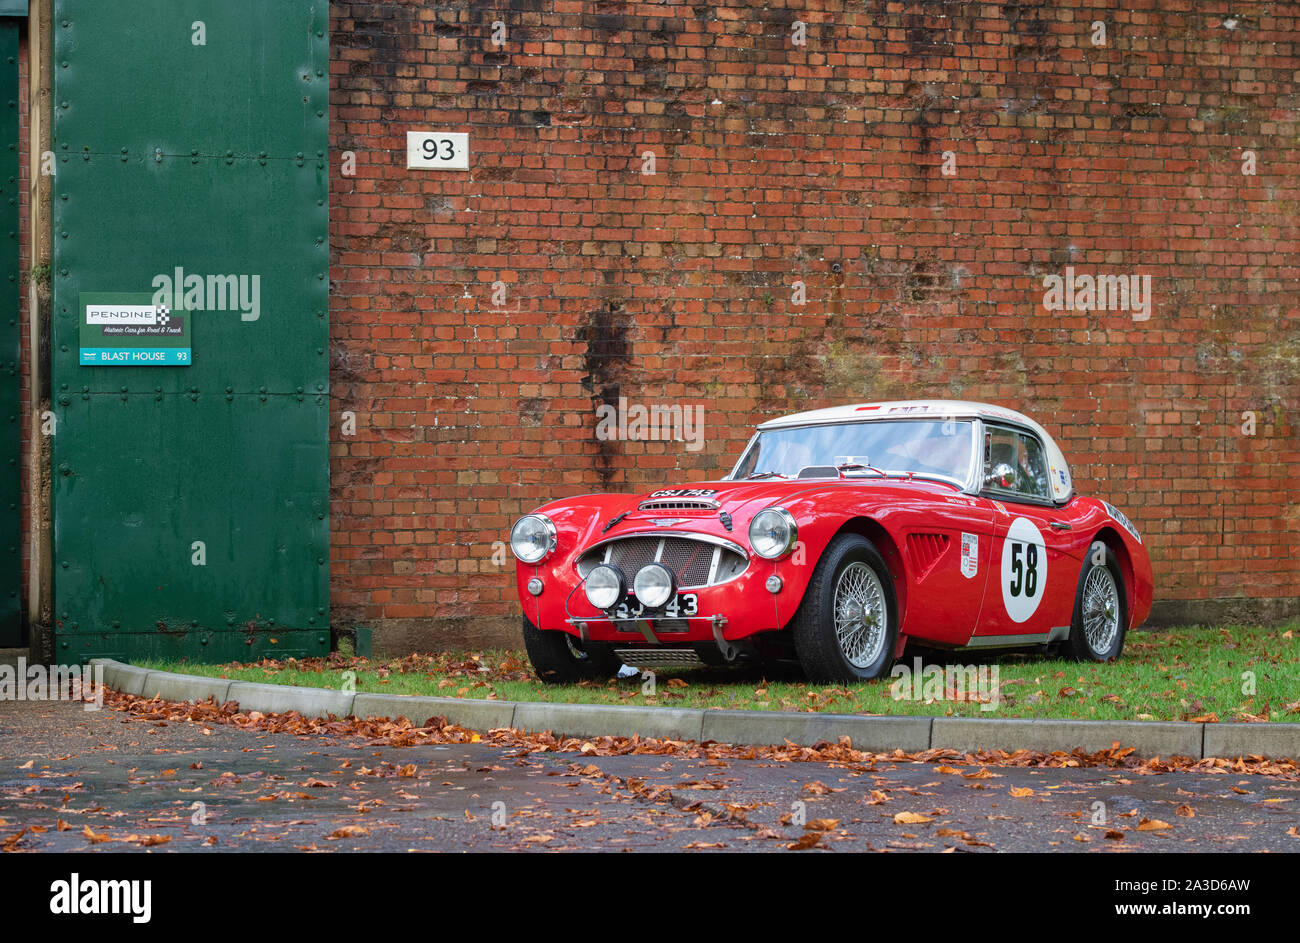 1962 Austin Healey car at Bicester heritage centre autumn sunday scramble event. Bicester, Oxfordshire, UK Stock Photo